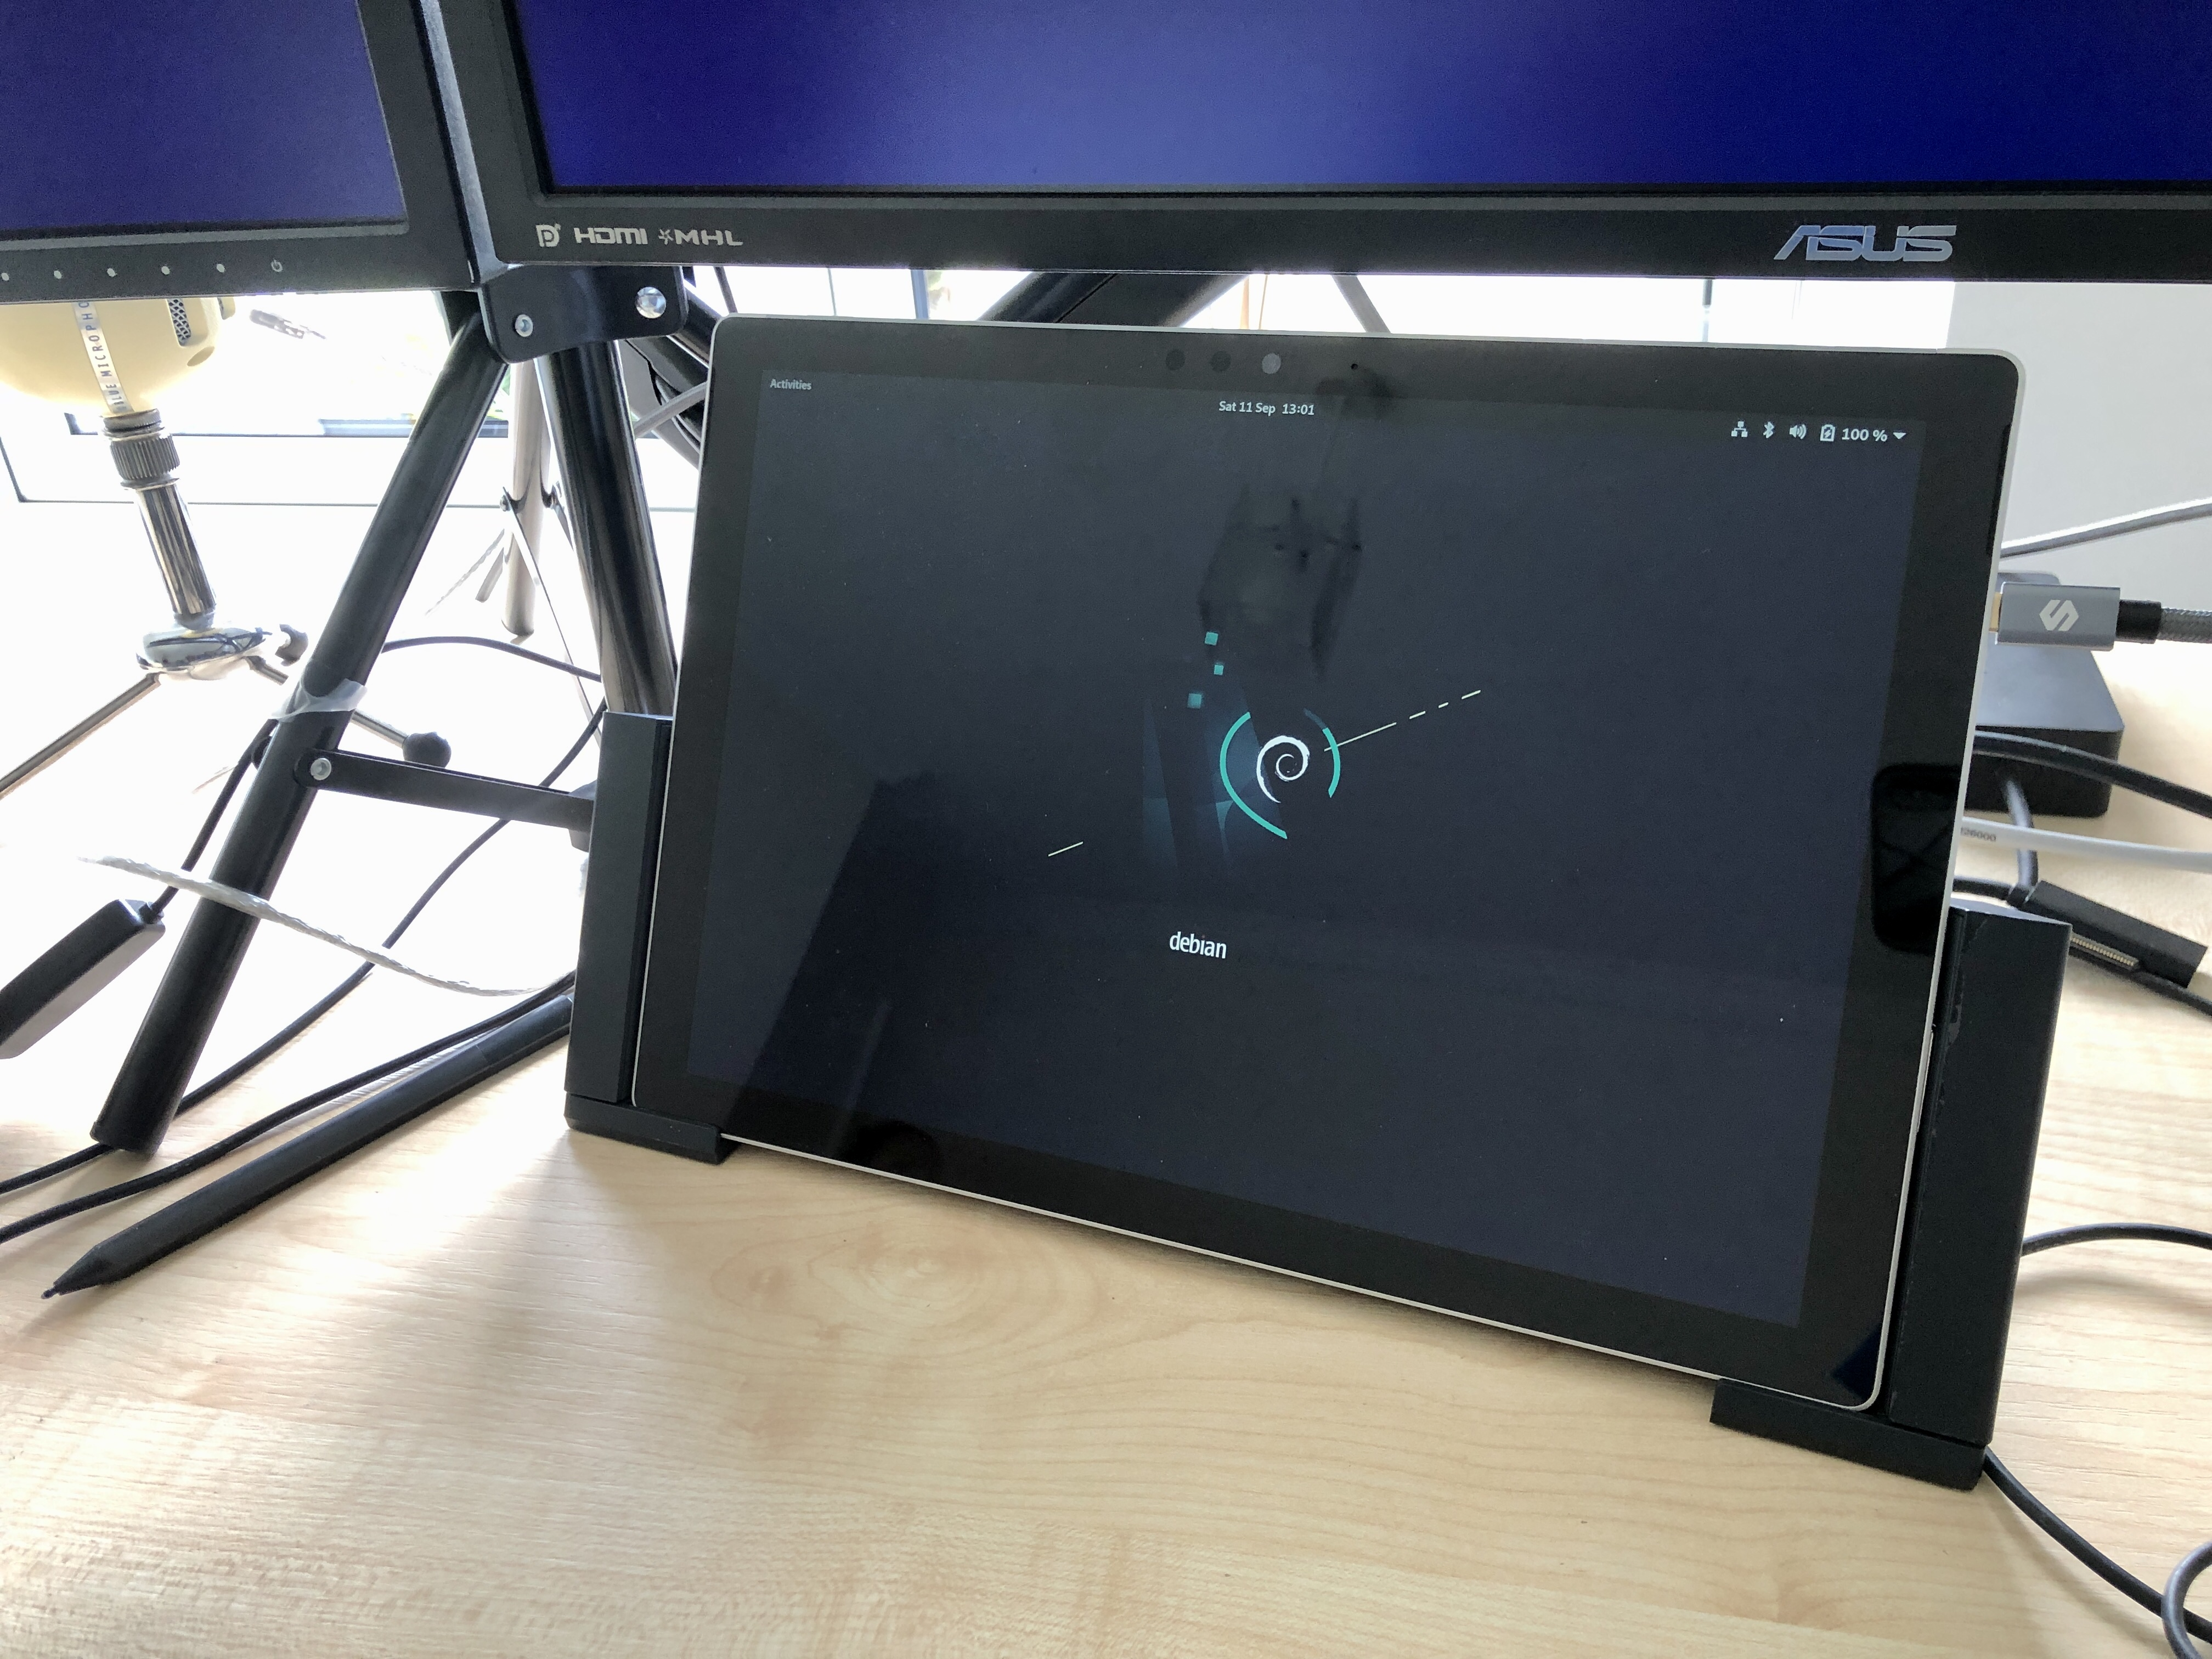 Surface Pro 6 in the old style clamp dock